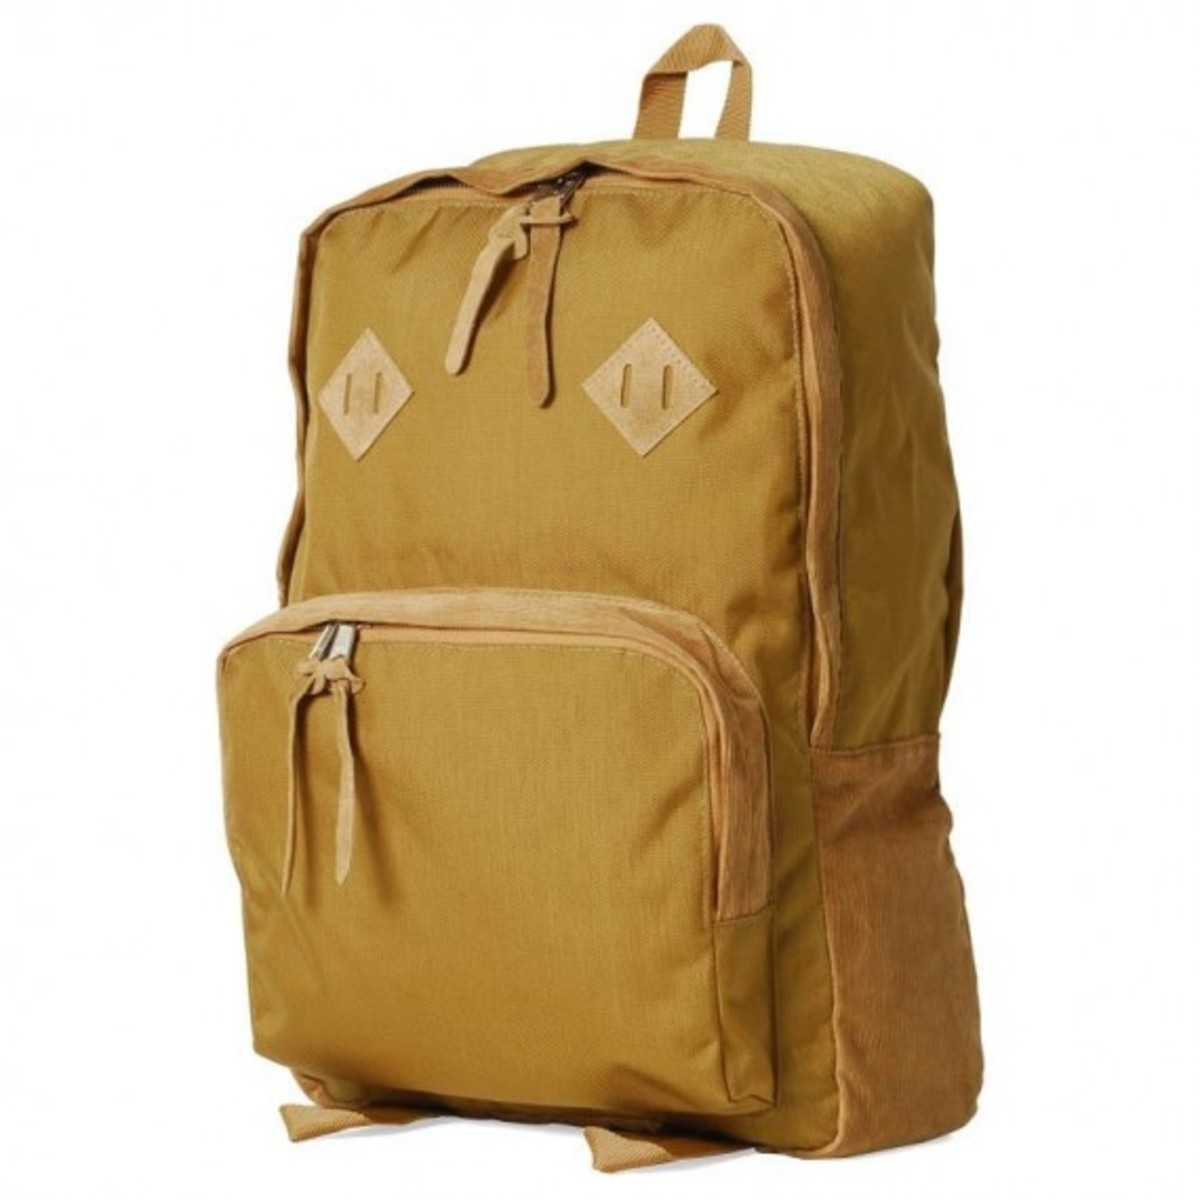 wardrobe- selspan-corduroy-backpacks-03